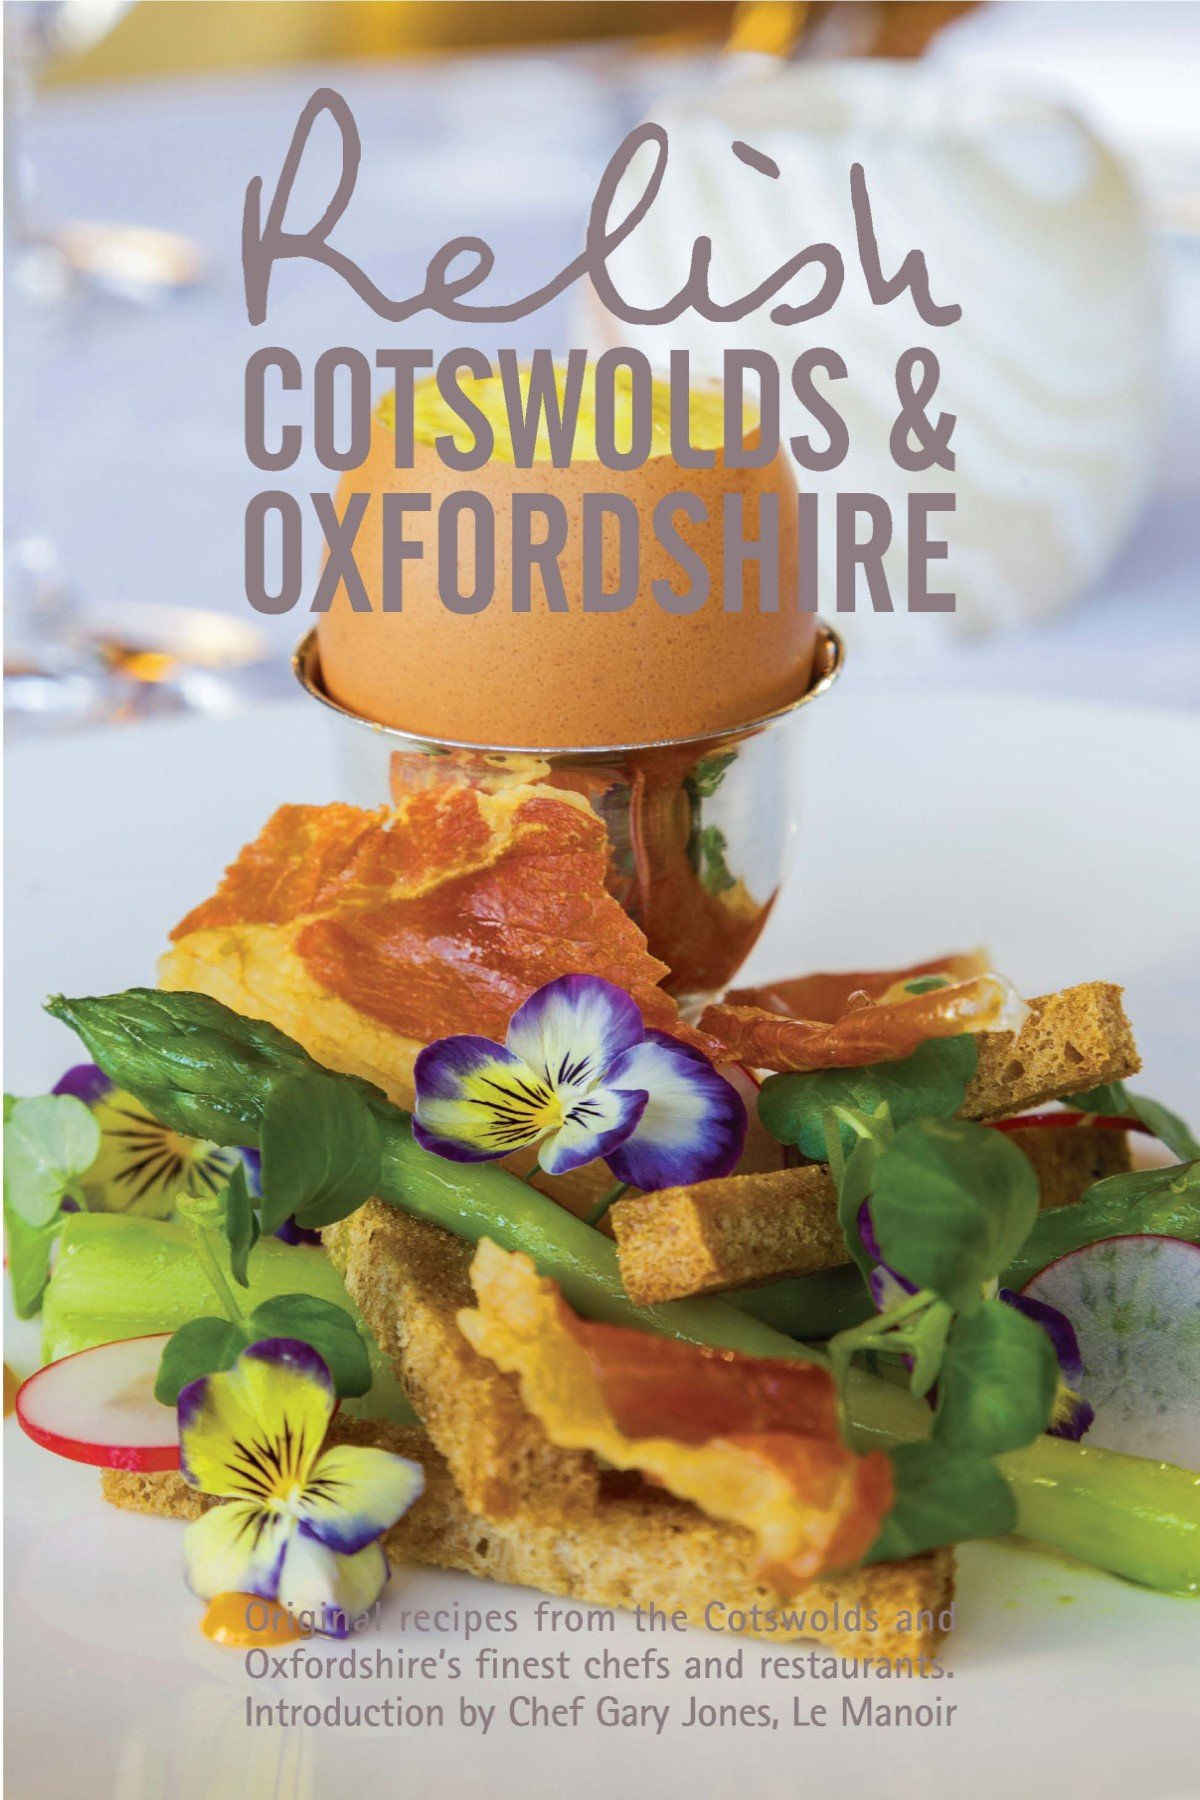 Relish Cotswolds & Oxfordshire Cookbook